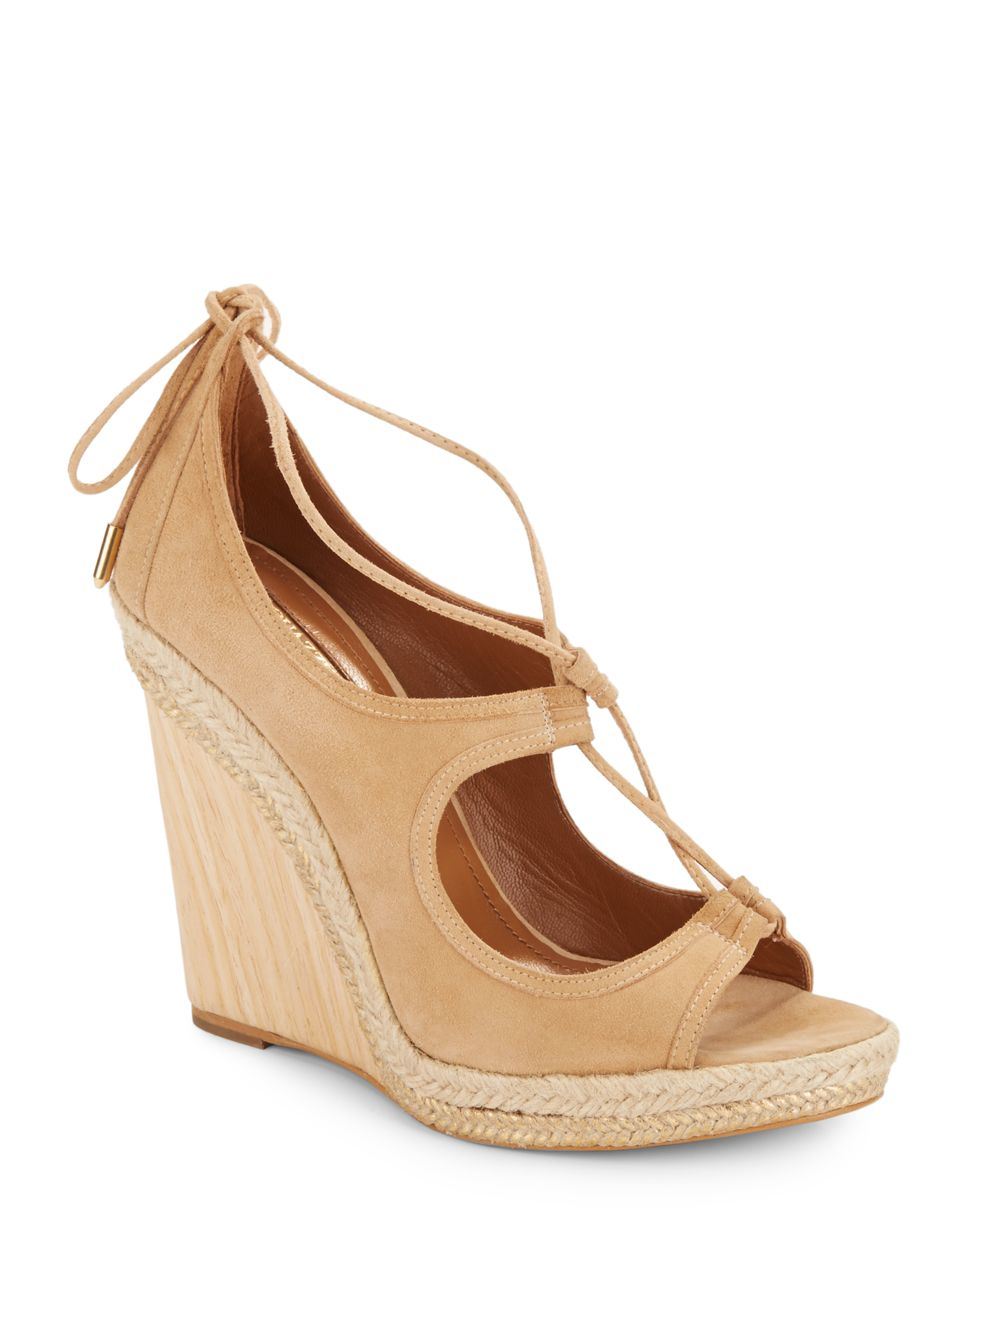 Aquazzura Christy Espadrille Wedges pay with paypal for sale discount low shipping fee clearance tumblr BxRUj2